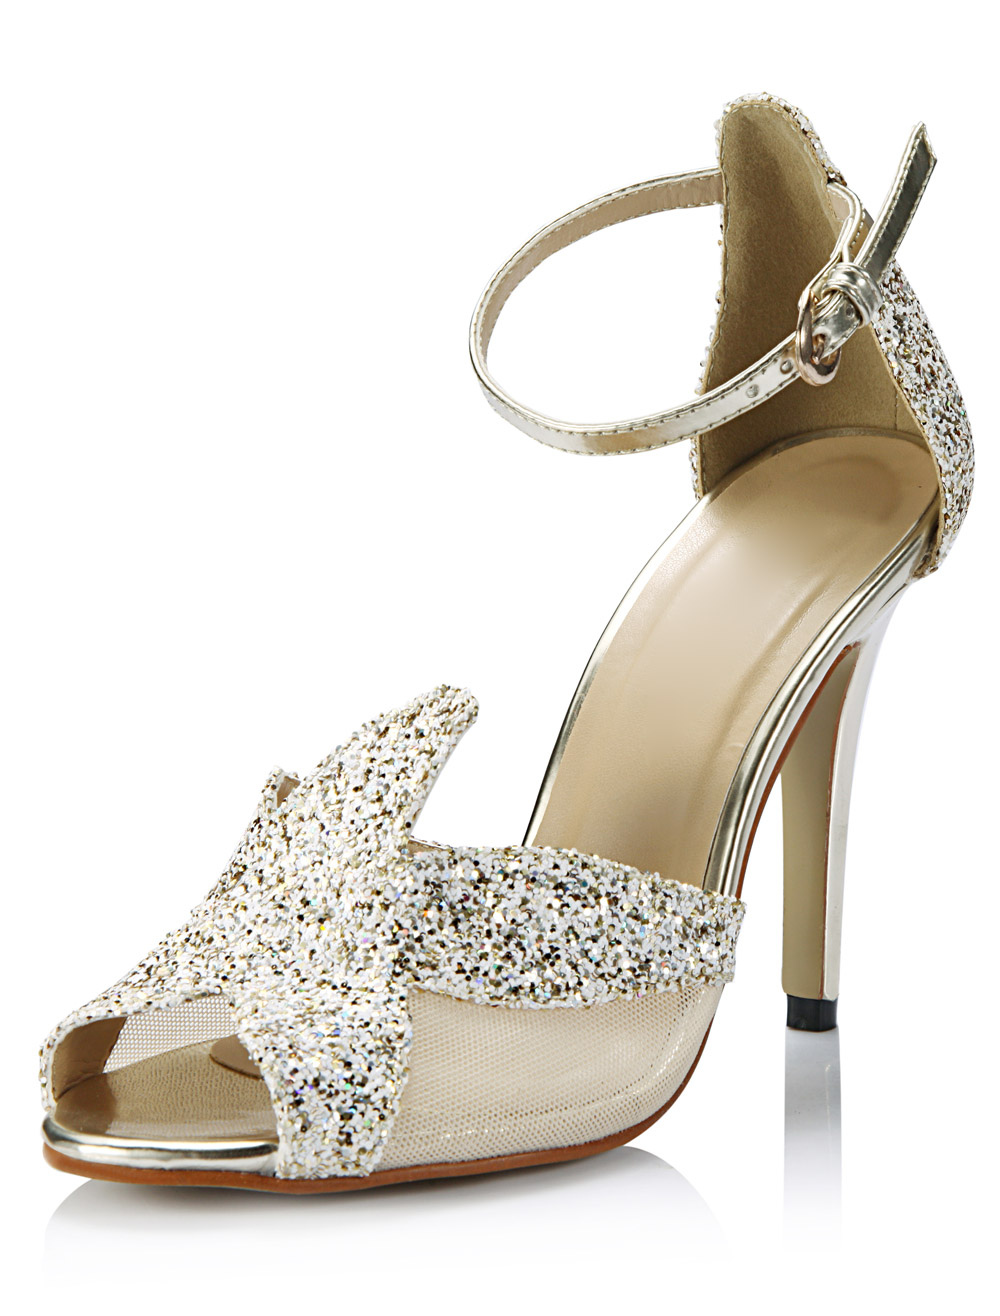 Chic Cut Out Stiletto Heel Sequined Cloth Fashion Dress Sandals